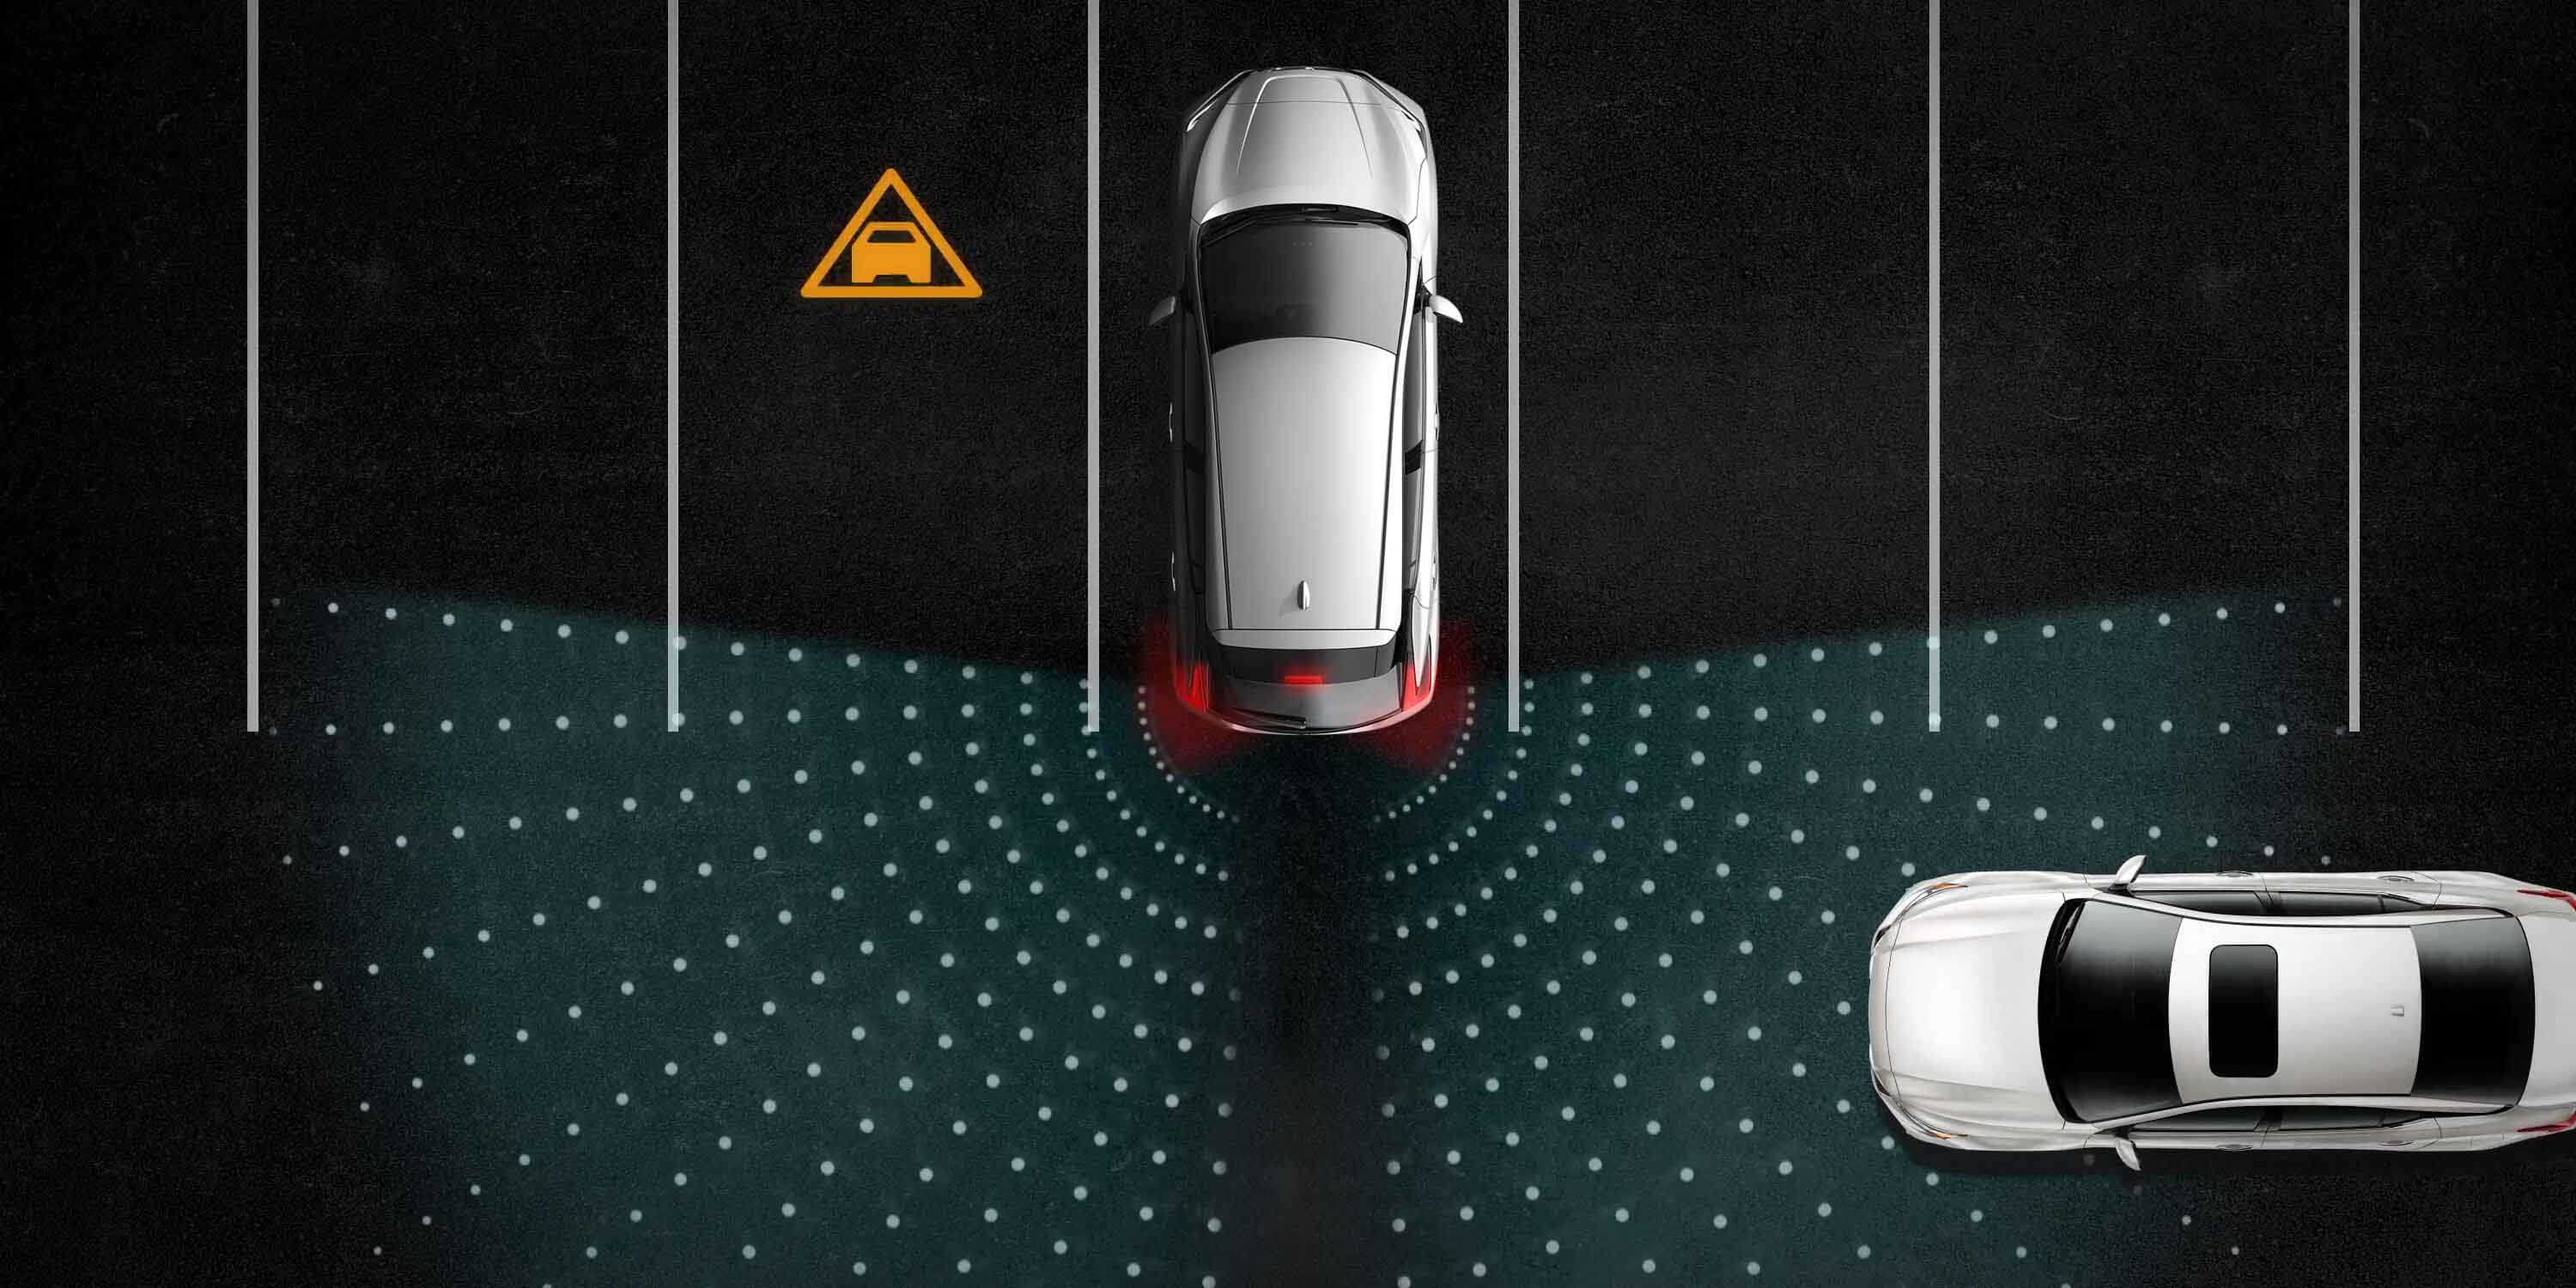 Moving Object Detection & Rear Cross Traffic Alert